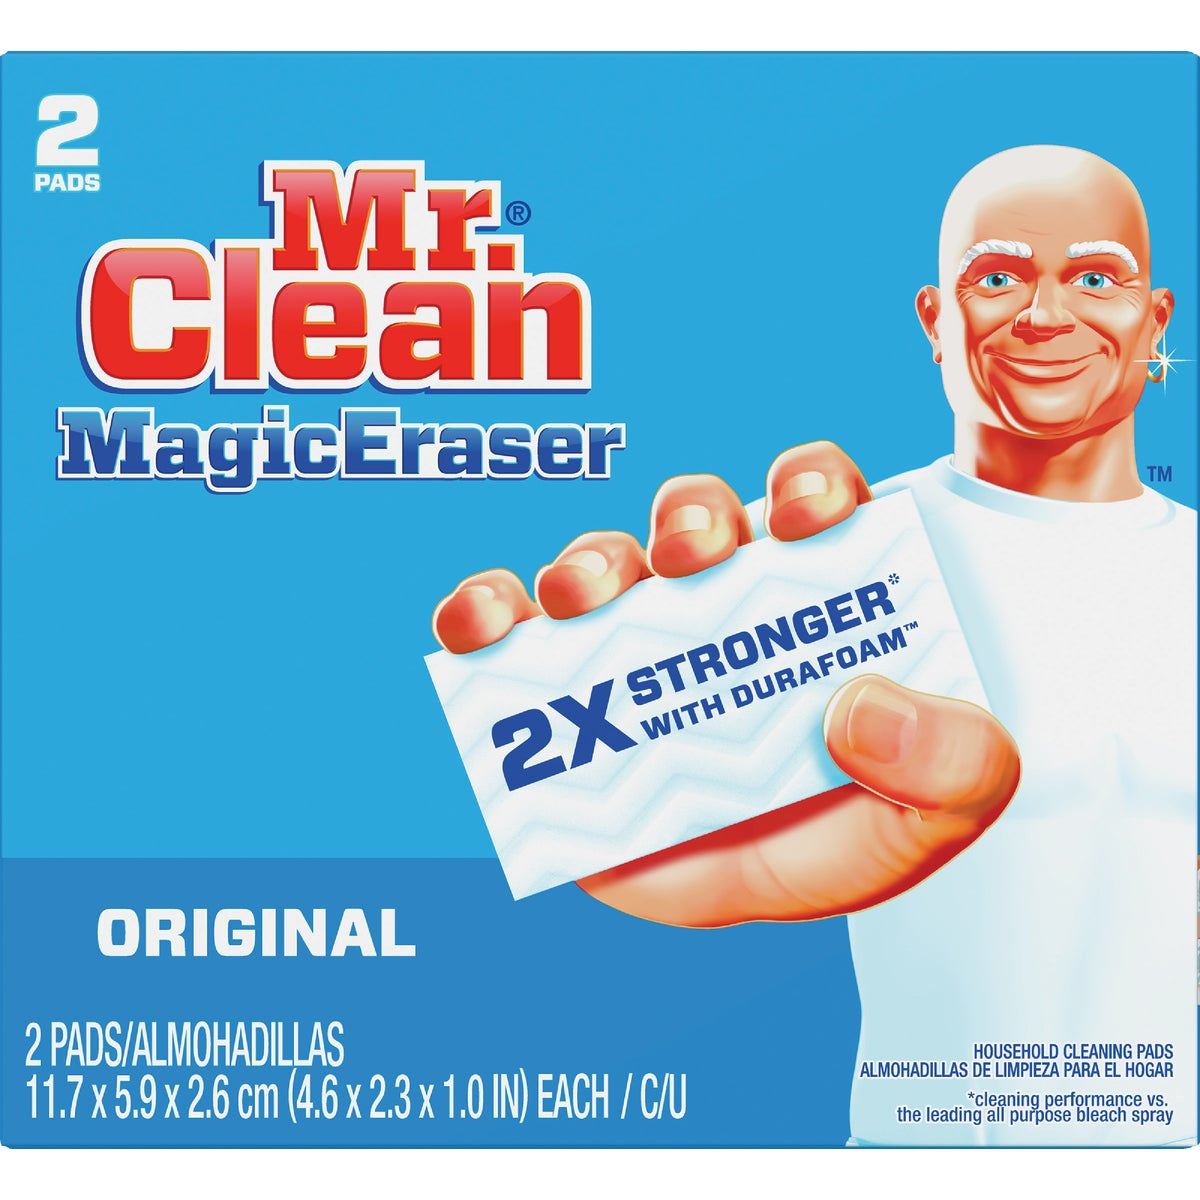 MR CLEAN MAGIC ERASER - 43515 by Procter & Gamble